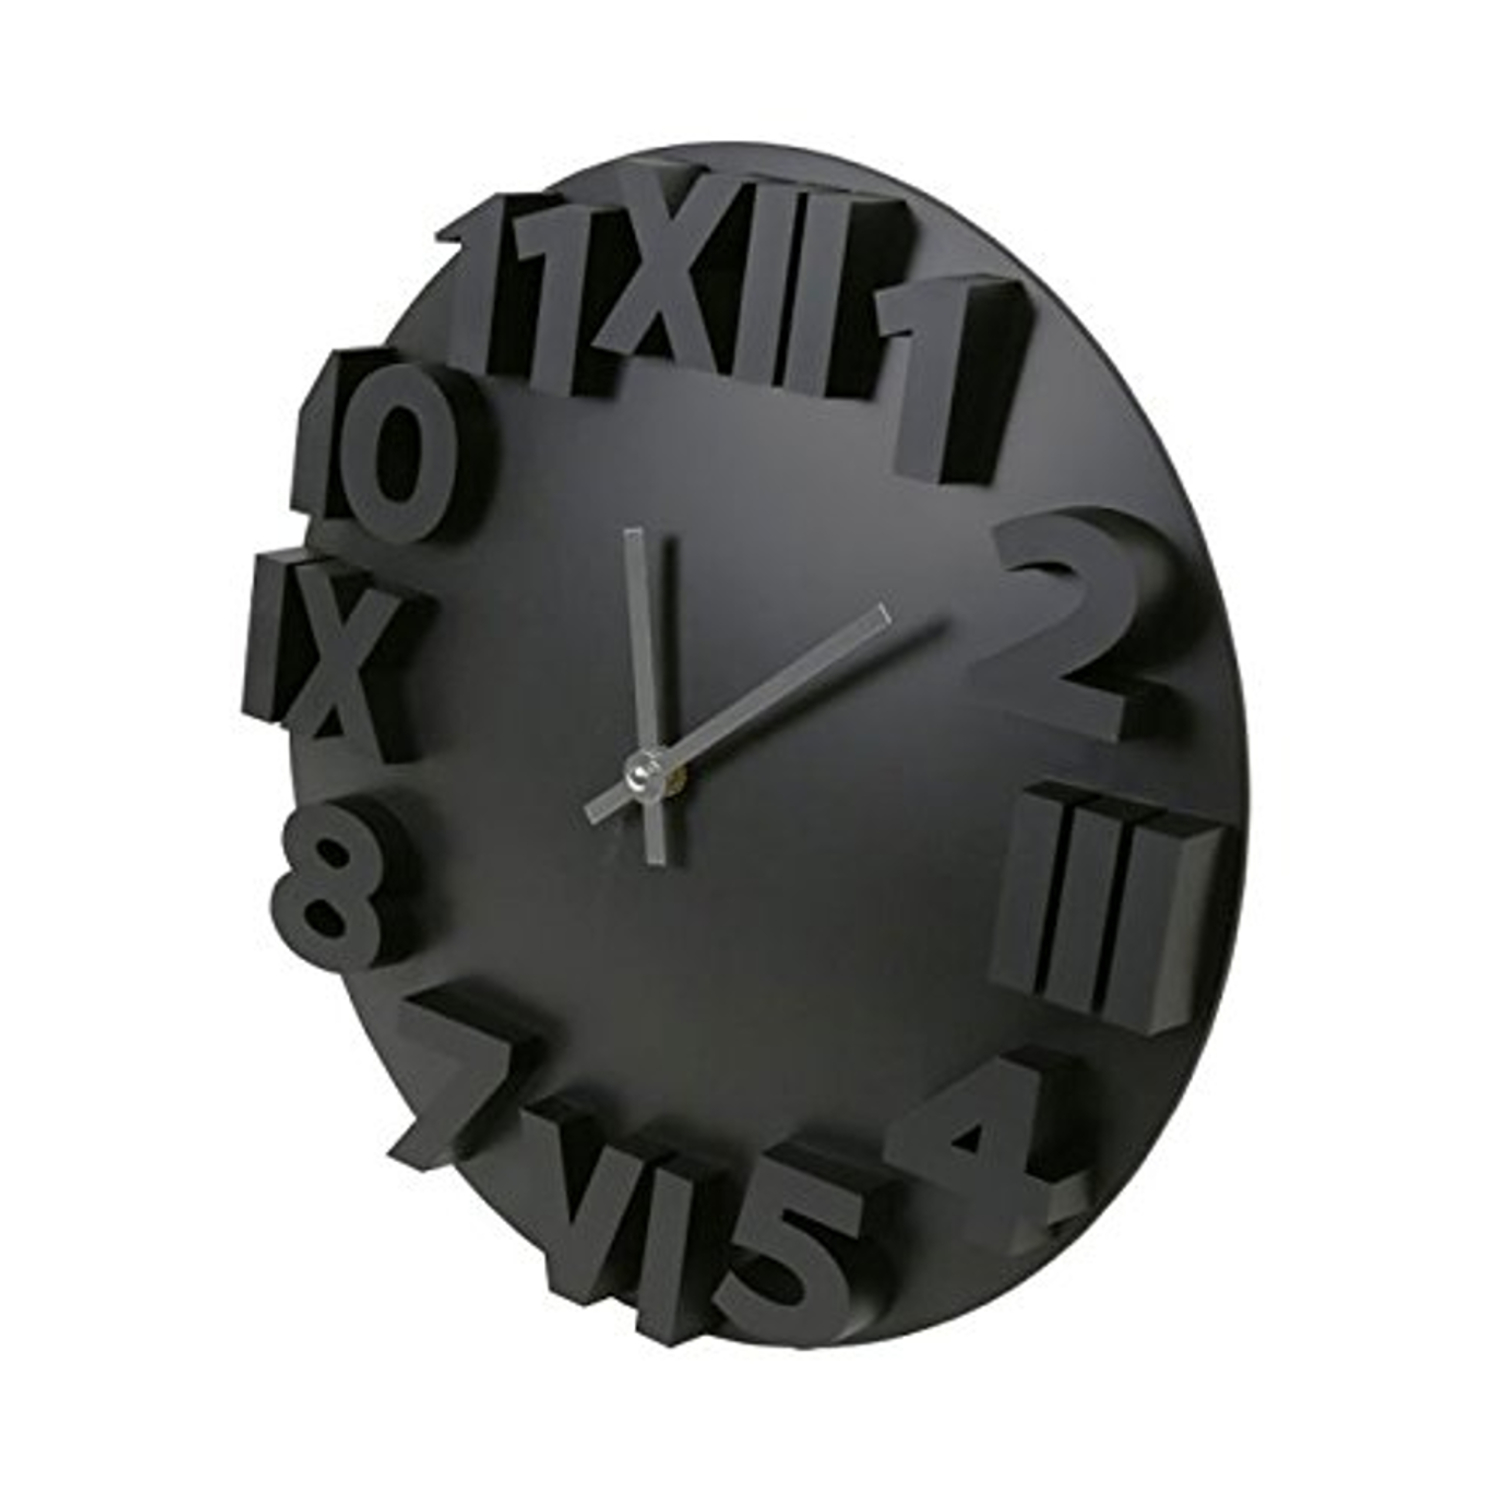 gro e wanduhr modern in zwei farben platinet wall clock. Black Bedroom Furniture Sets. Home Design Ideas